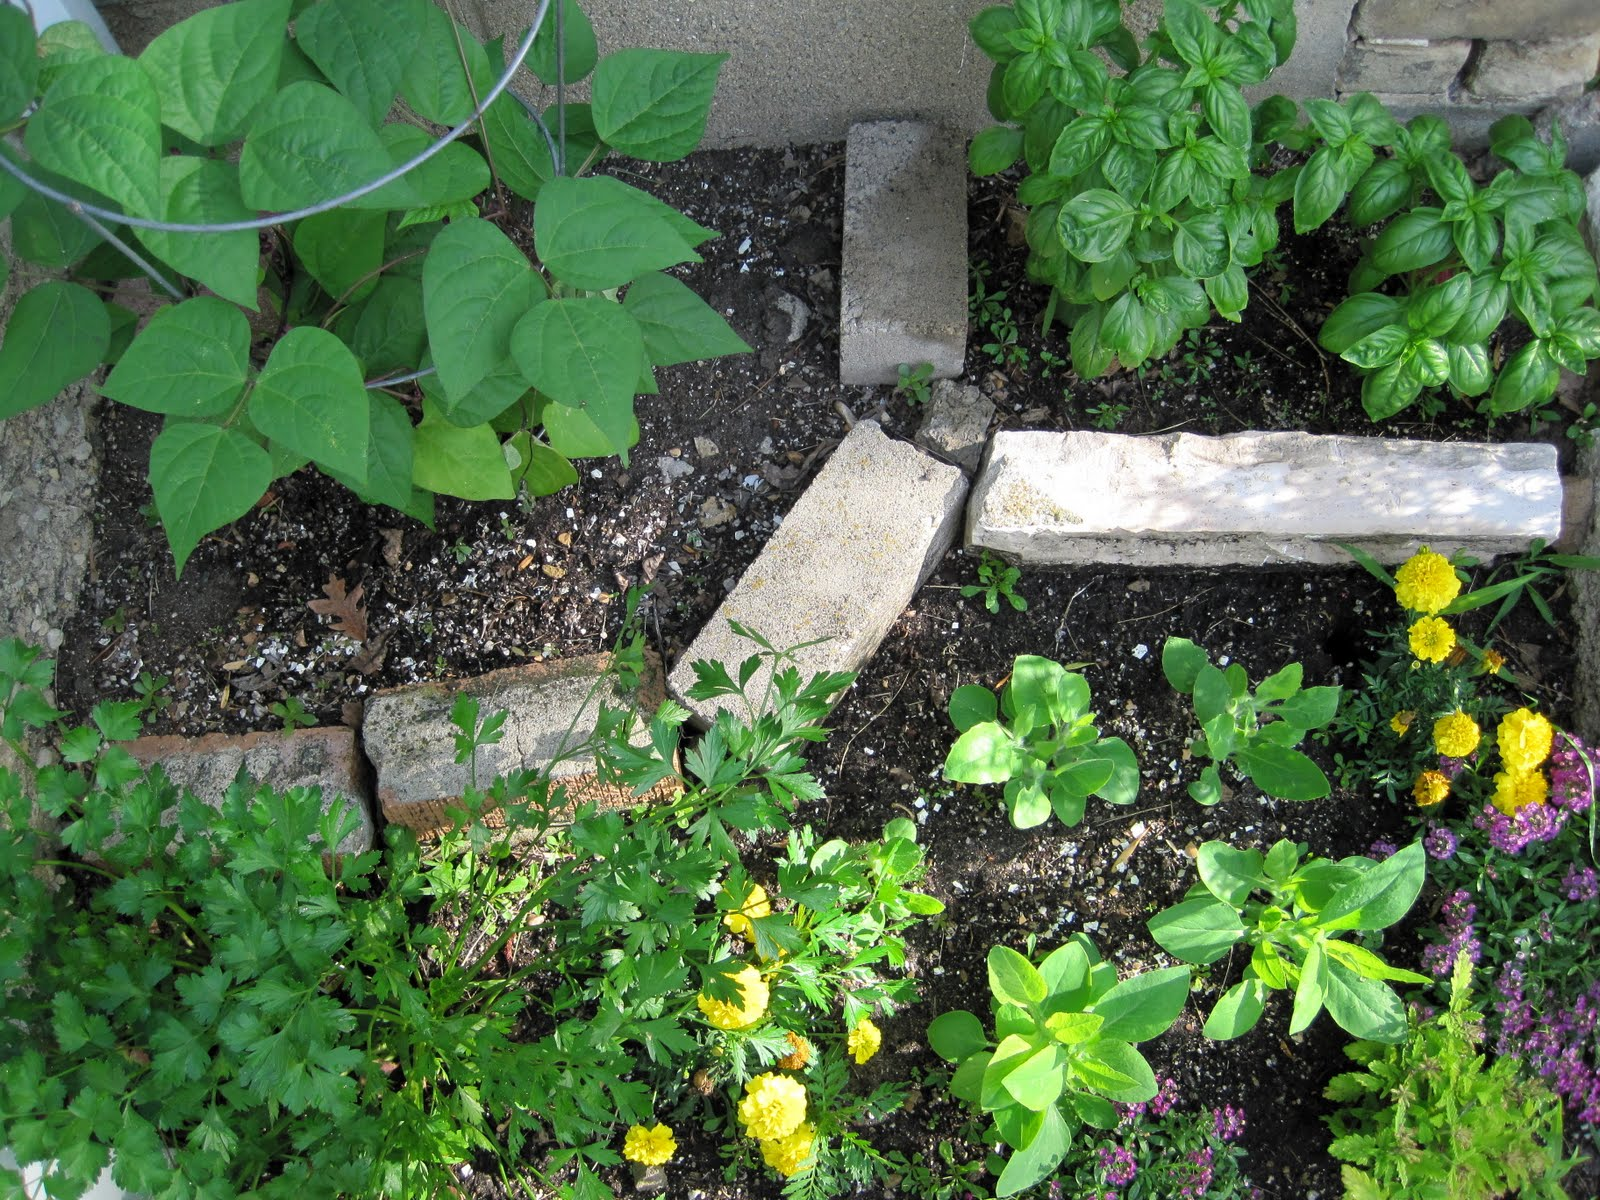 Mr micawber 39 s recipe for happiness a very small garden for Very small trees for landscaping